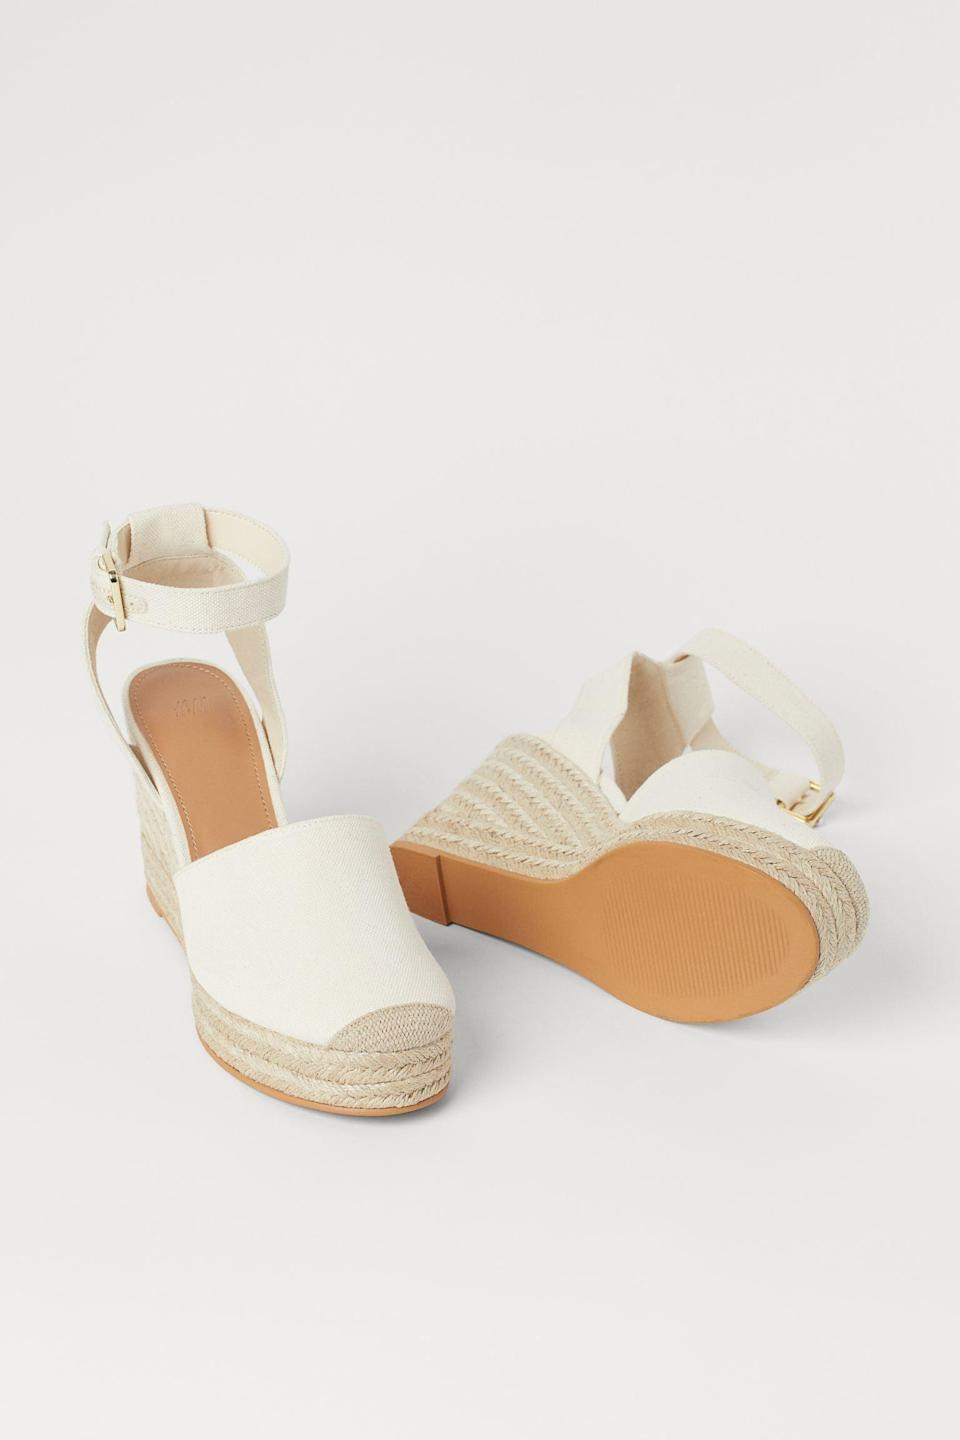 <p>Headed to the beach? A spontaneous brunch or park hang? These <span>Wedge-heel Espadrilles</span> ($35) will take you anywhere in style.</p>